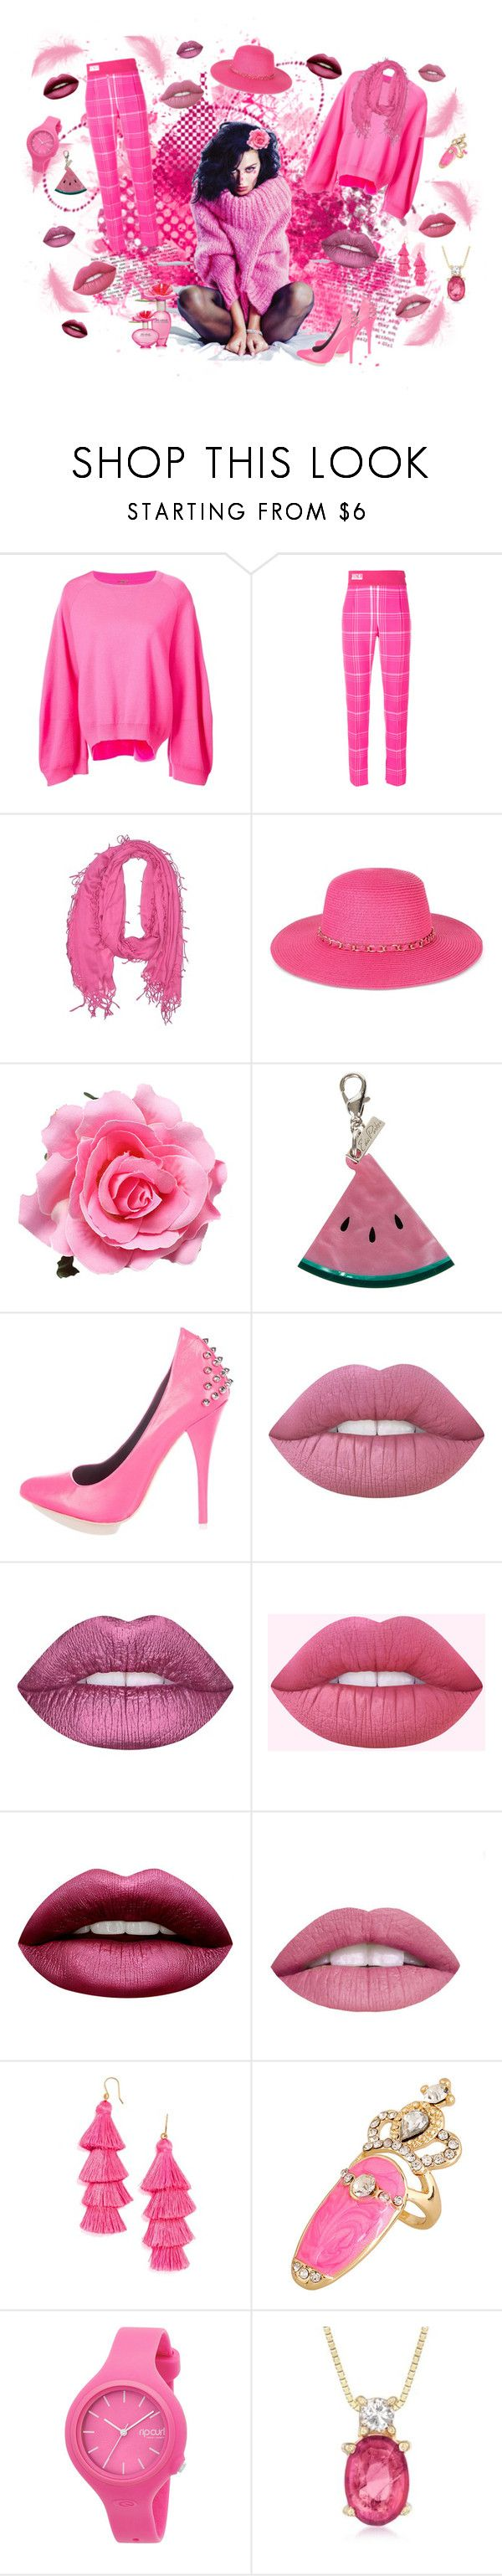 """""""pinky lipsy"""" by marina-hofman-mallander ❤ liked on Polyvore featuring Marc Jacobs, ADAM, Fendi, Natasha, August Hat, Edie Parker, Alexander McQueen, Lime Crime, L.A. Girl and WithChic"""